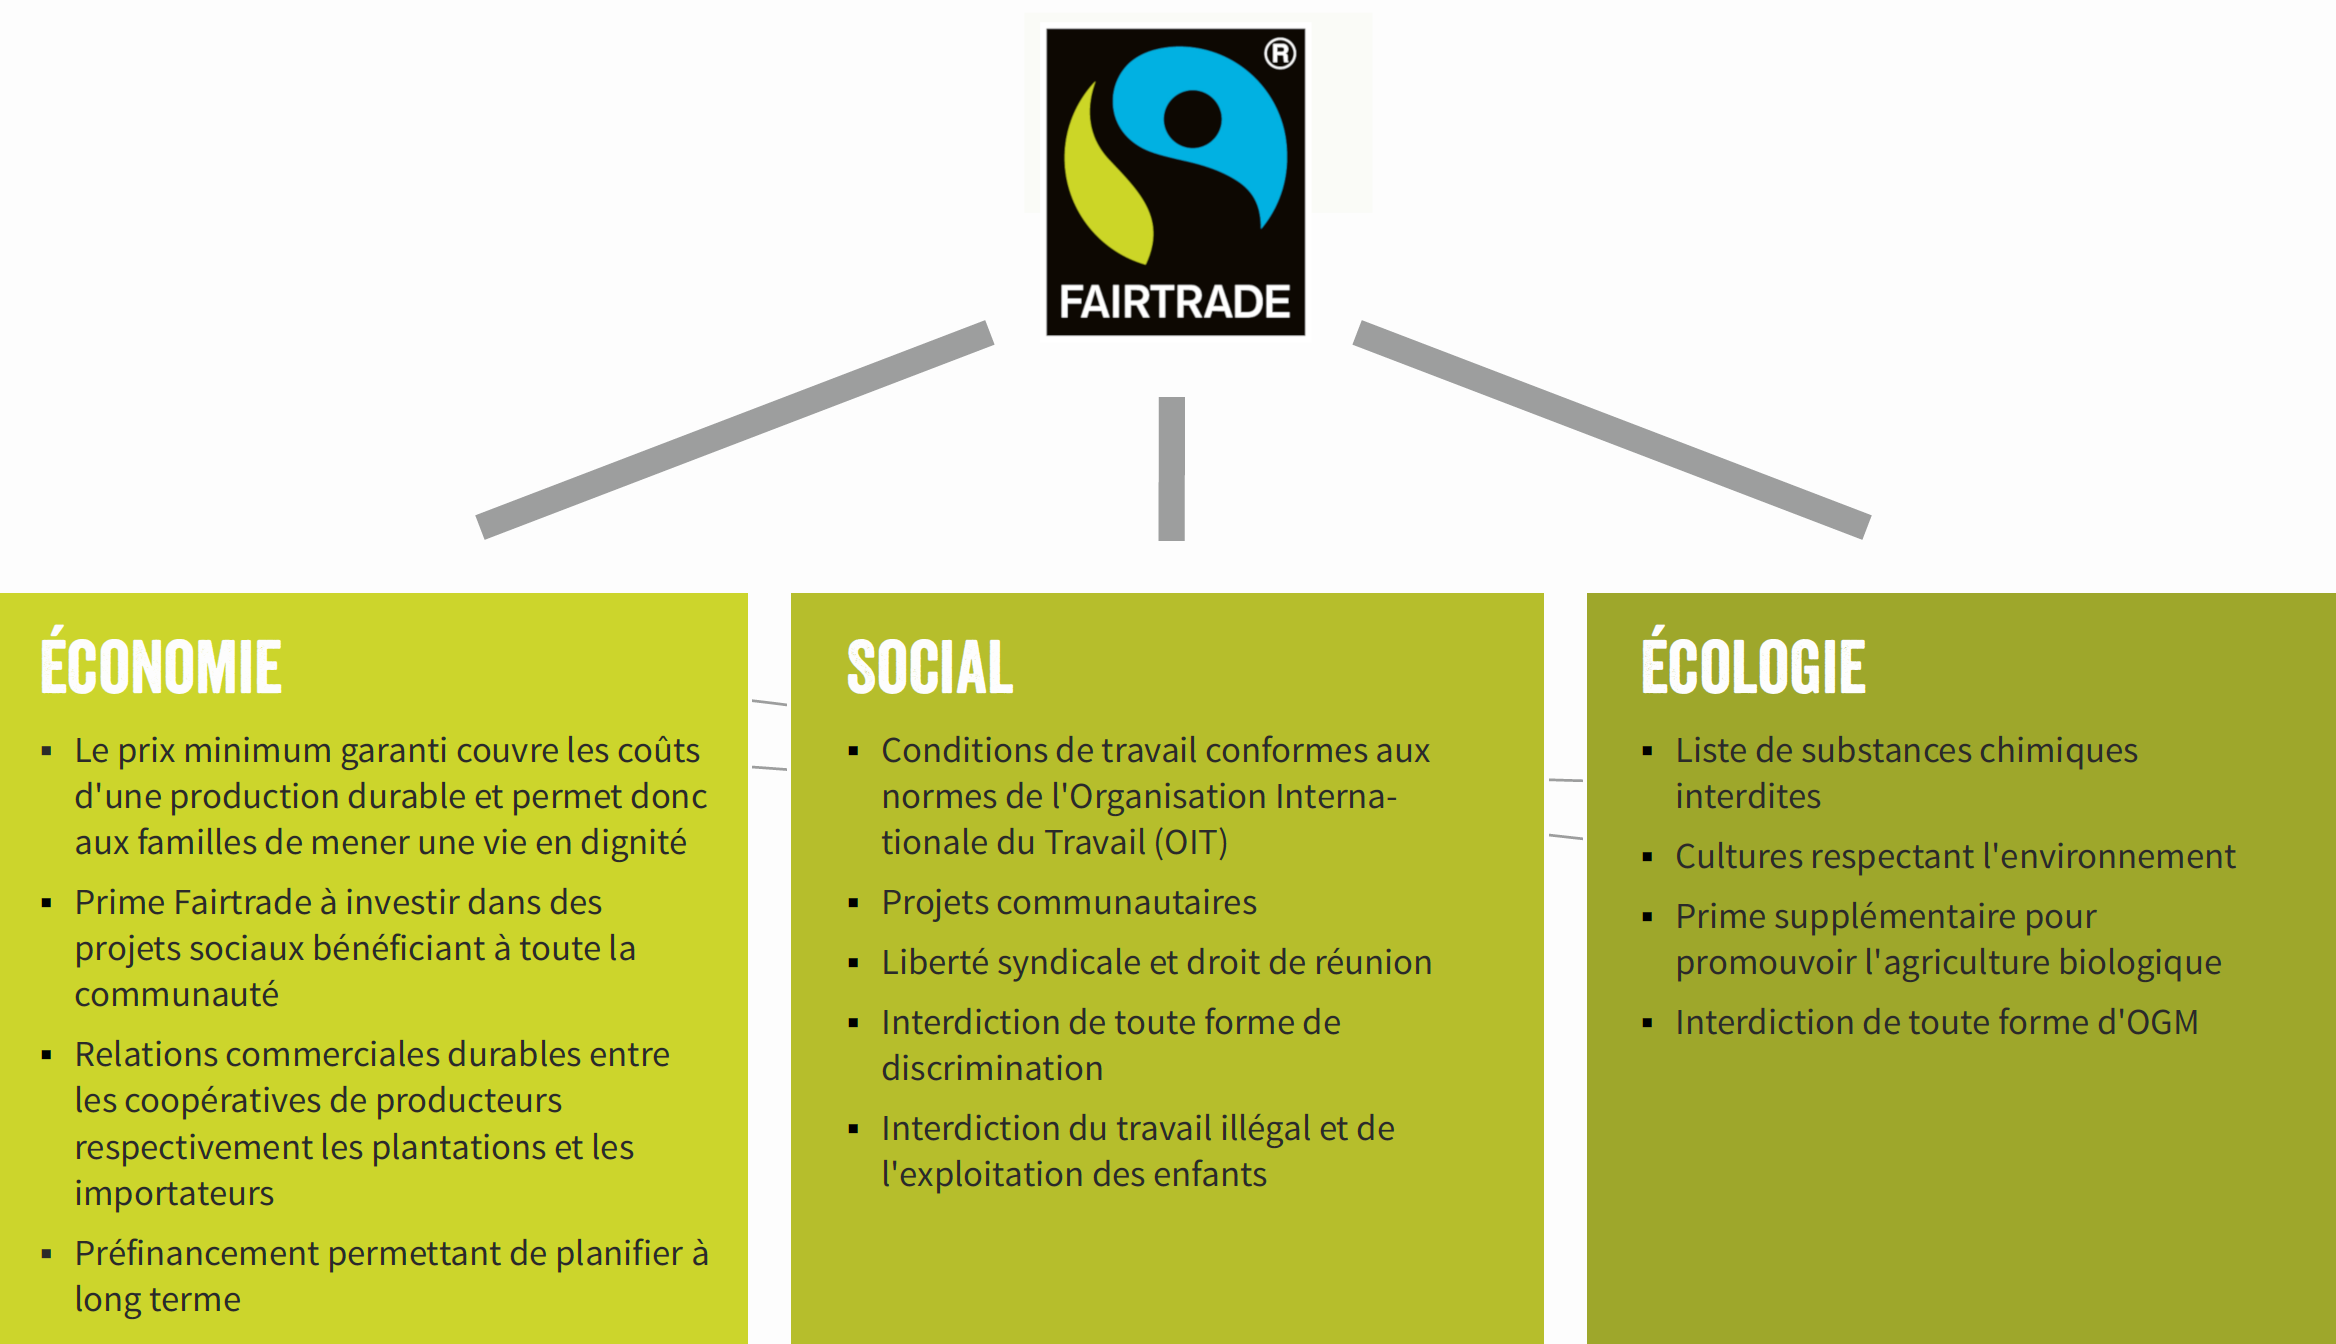 Standards Fairtrade